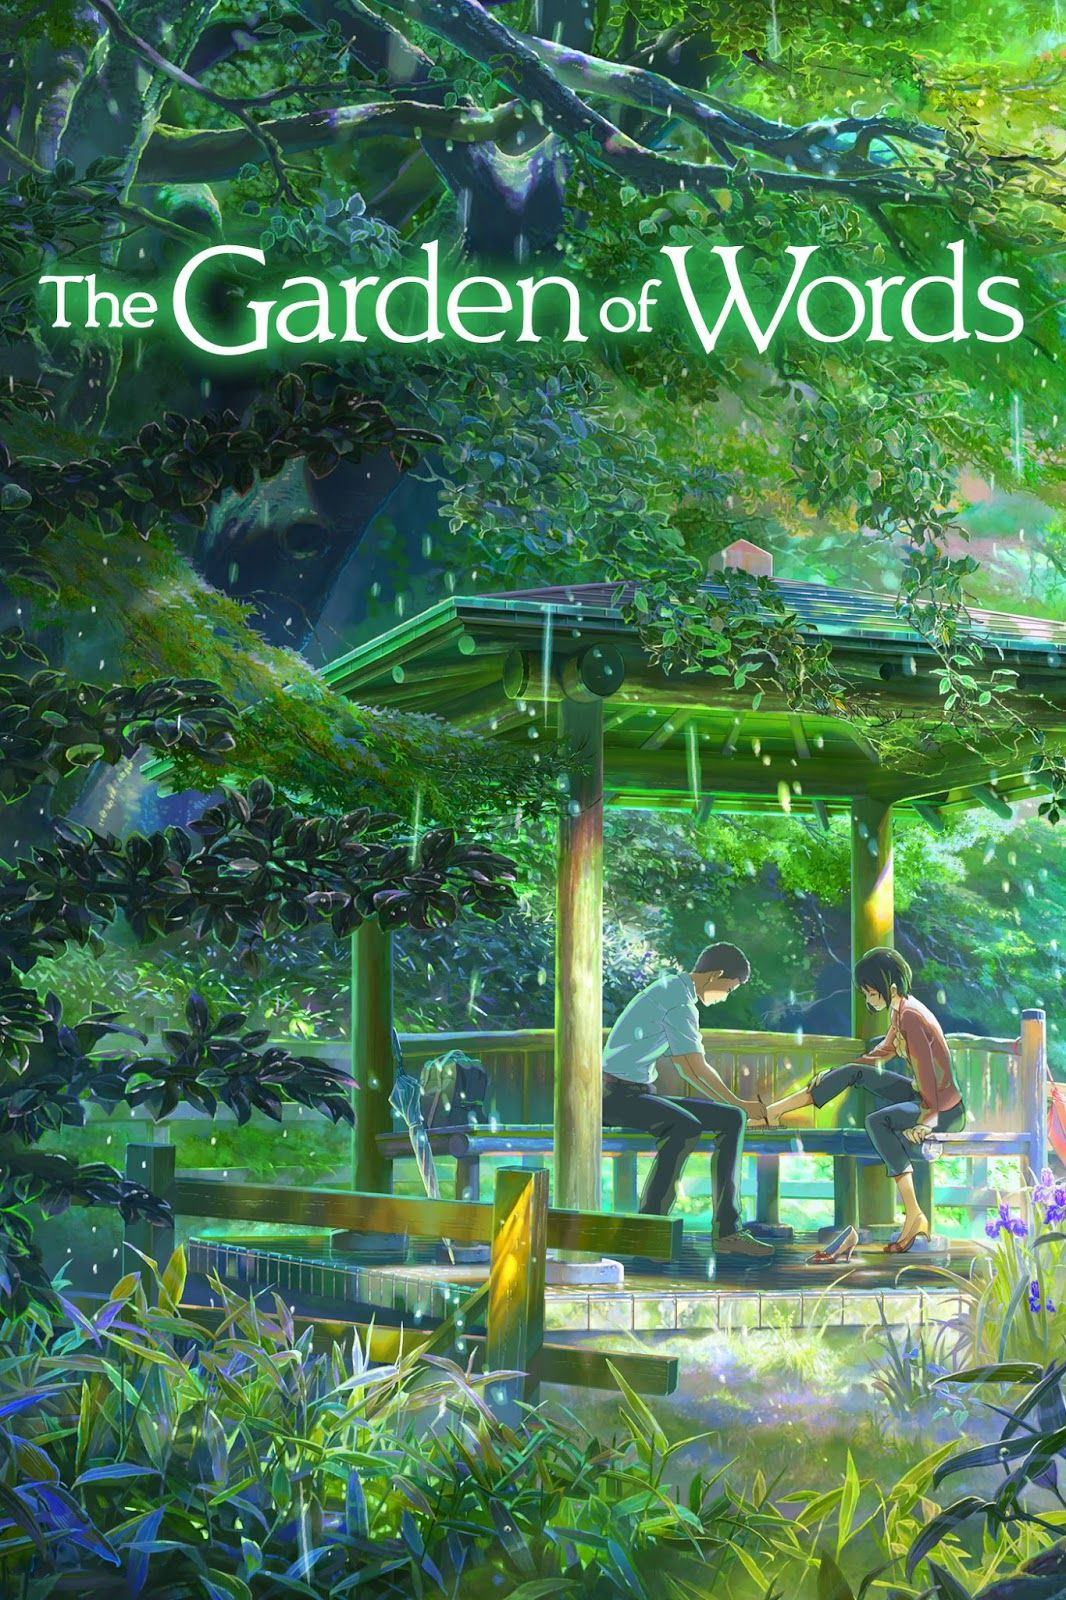 Download Wallpaper The Garden Of Words Hd Rar Zip Horor Film